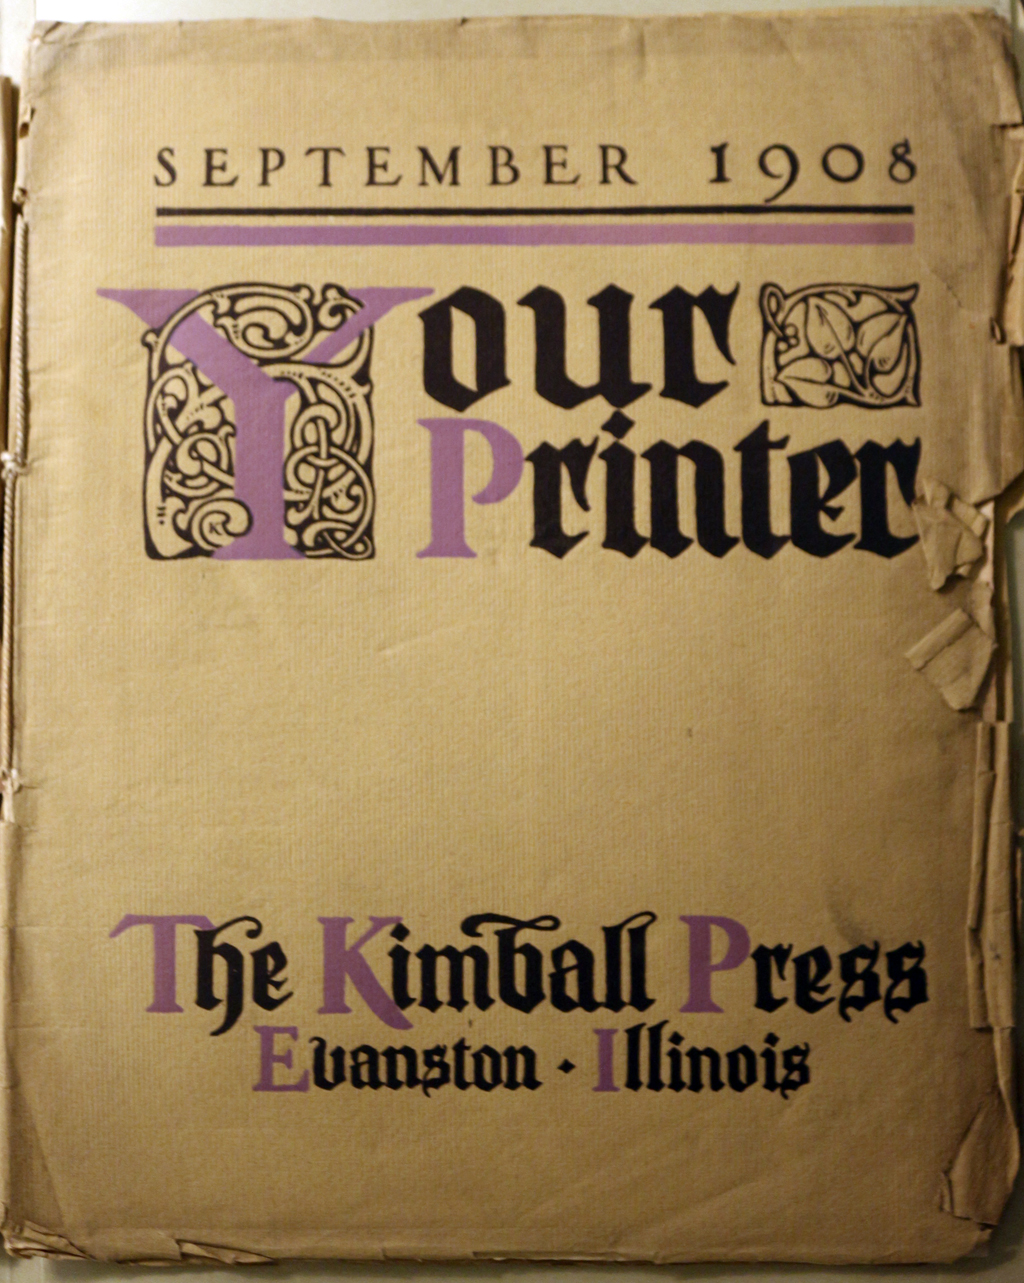 Your Printer (September 1908). Cover design by Frederic W. Goudy. Courtesy of the Library of Congress.